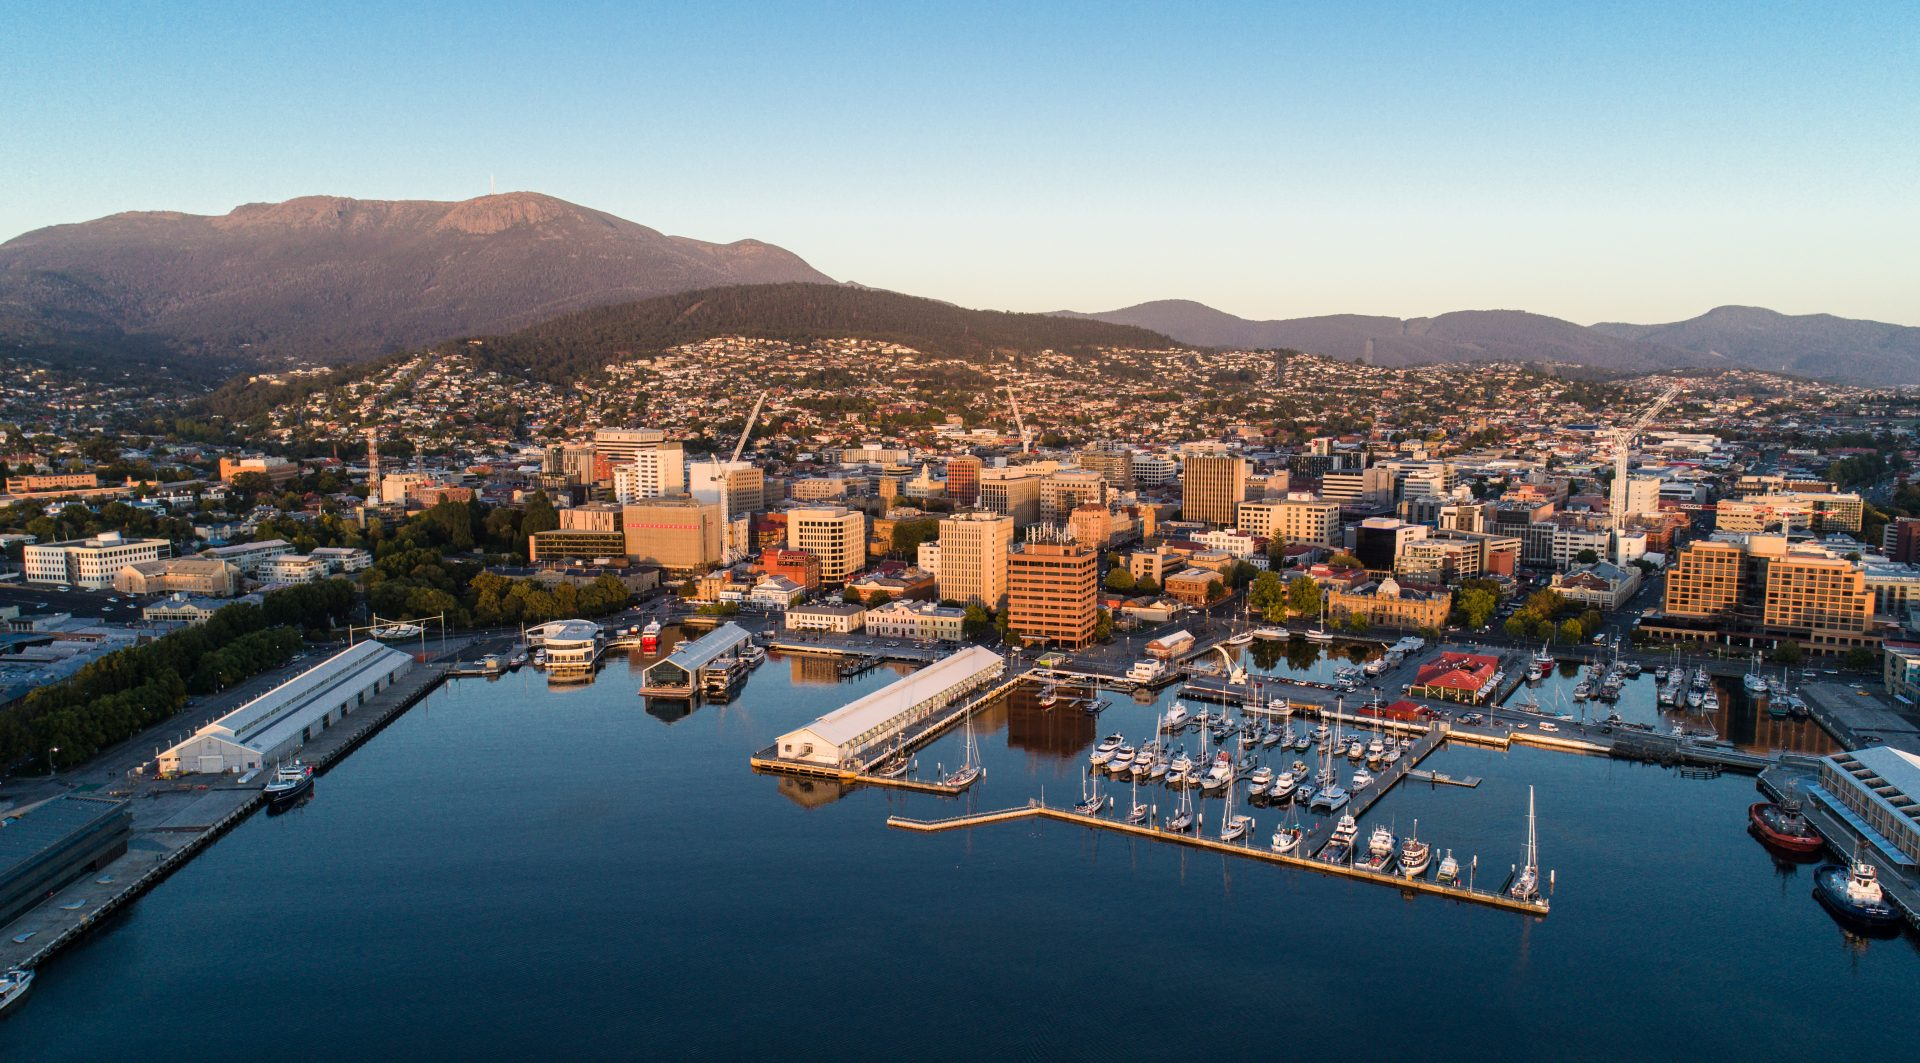 Dawn view of Hobart, Tasmania, Australia's hidden gem